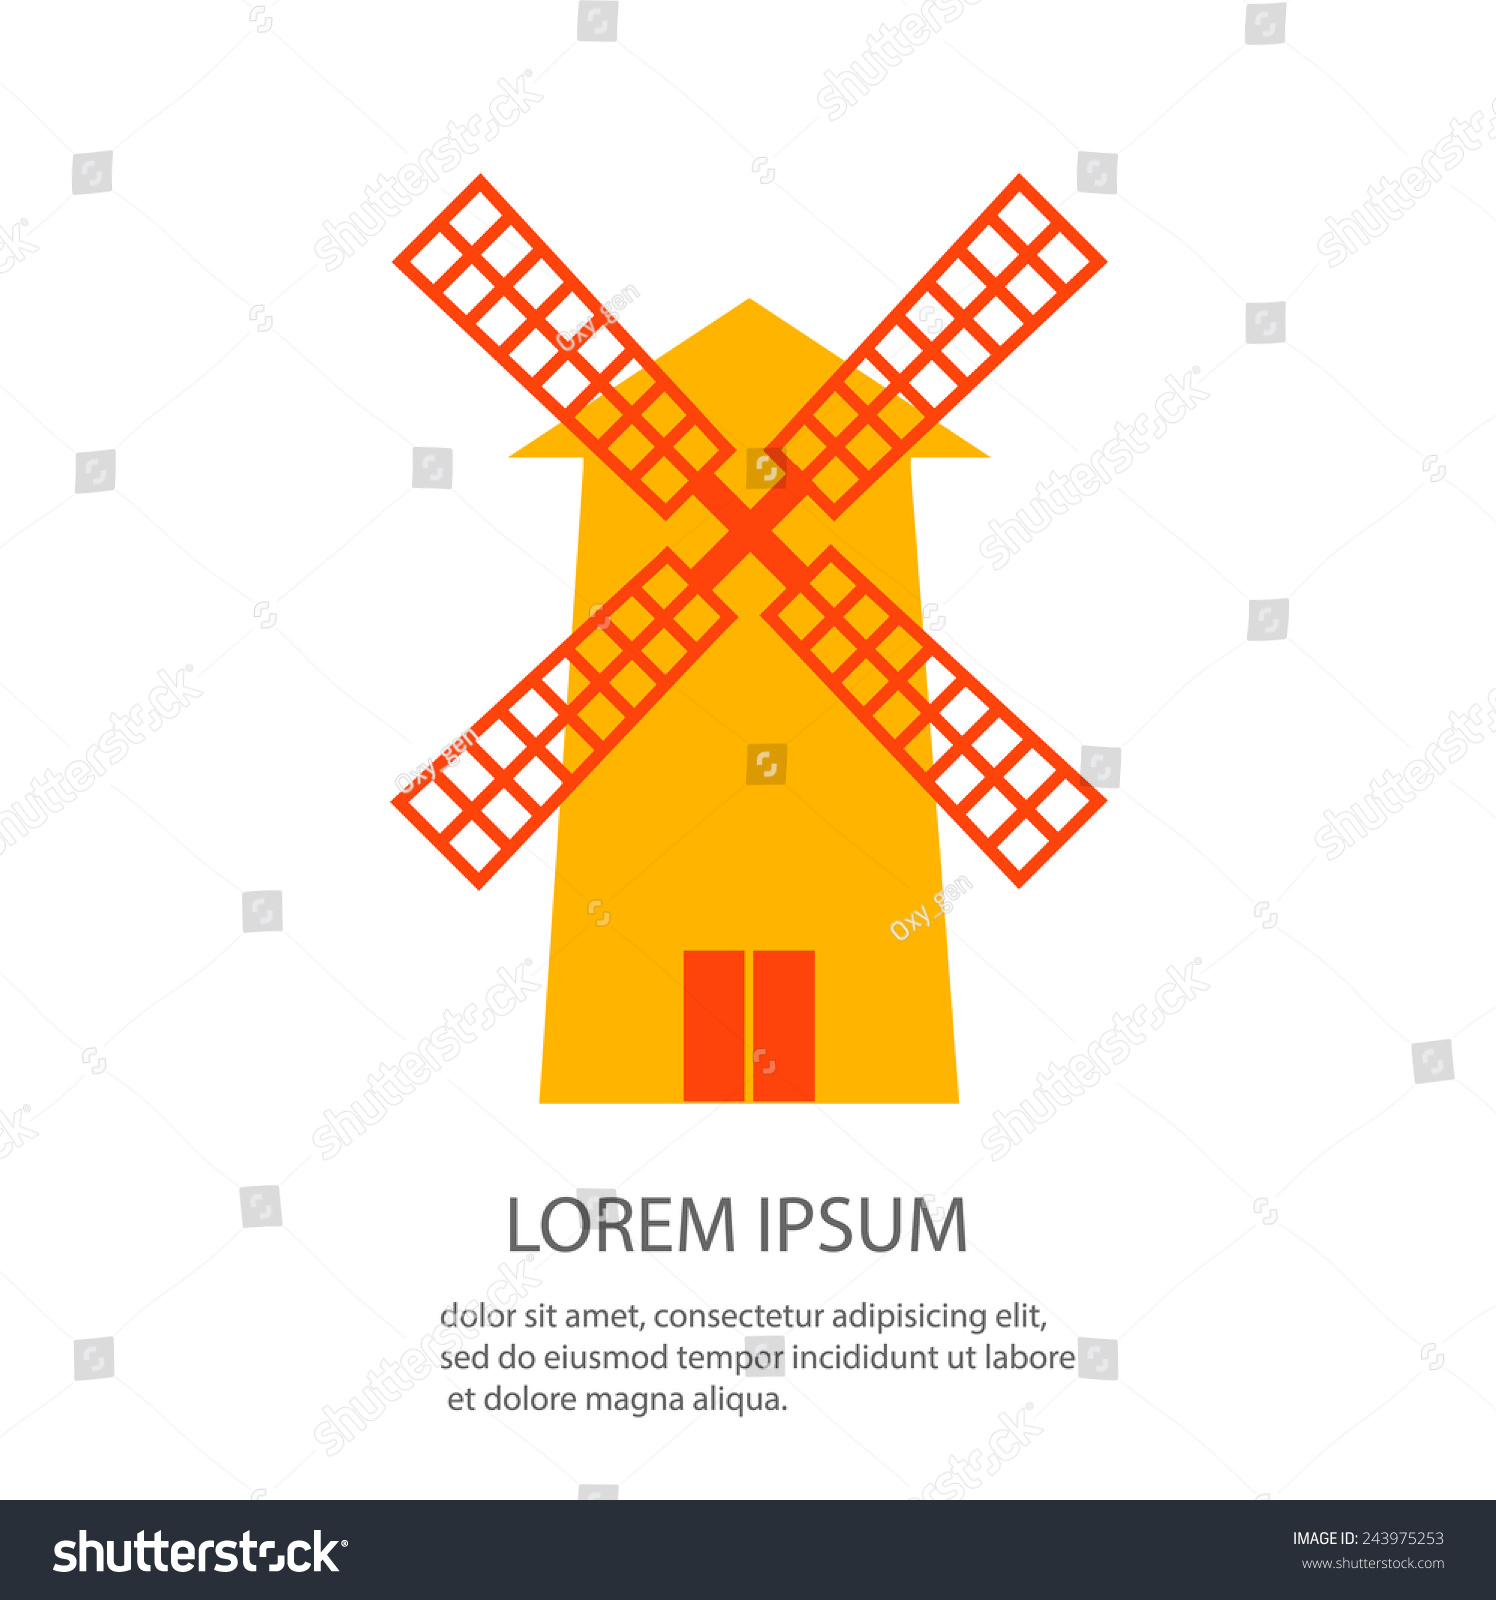 Wind mill symbol vector illustration stock vector 2018 243975253 wind mill symbol vector illustration publicscrutiny Image collections